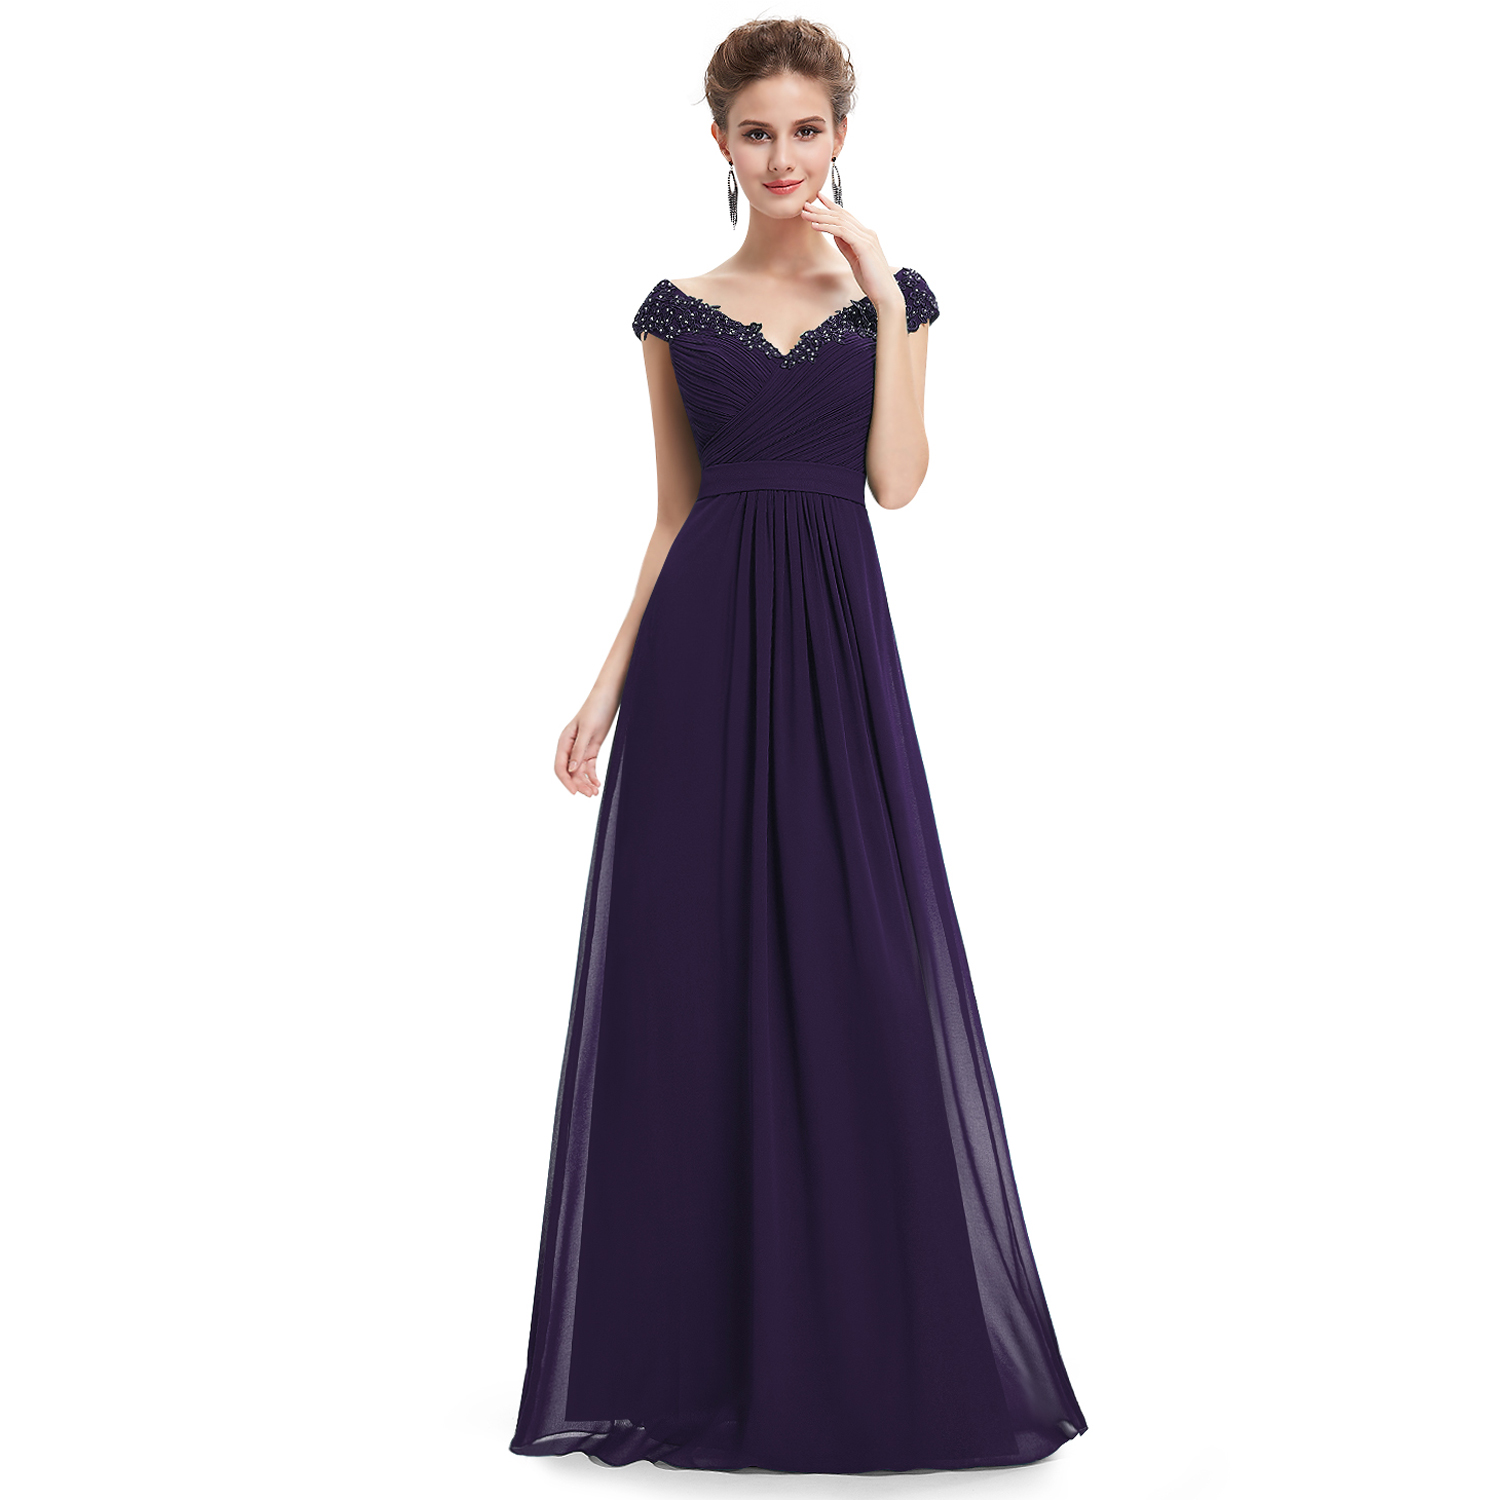 Beaded Military Ball Gowns Evening Bridesmaid Dress 08633 Size 6 ...